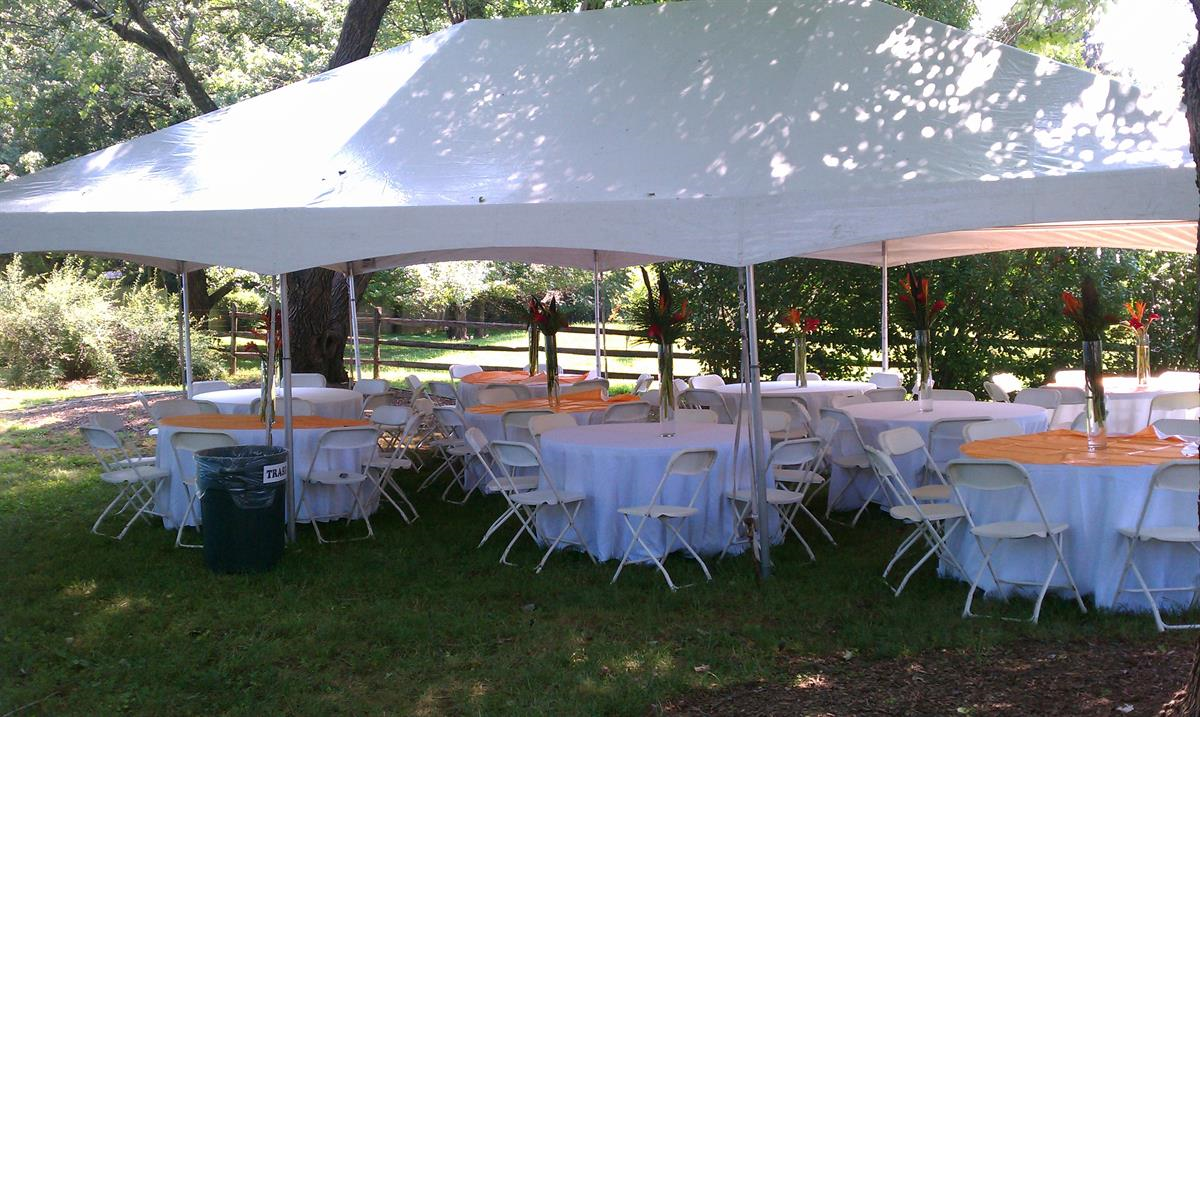 Party Rentals - Tables, Chairs, Bounces, Concessions